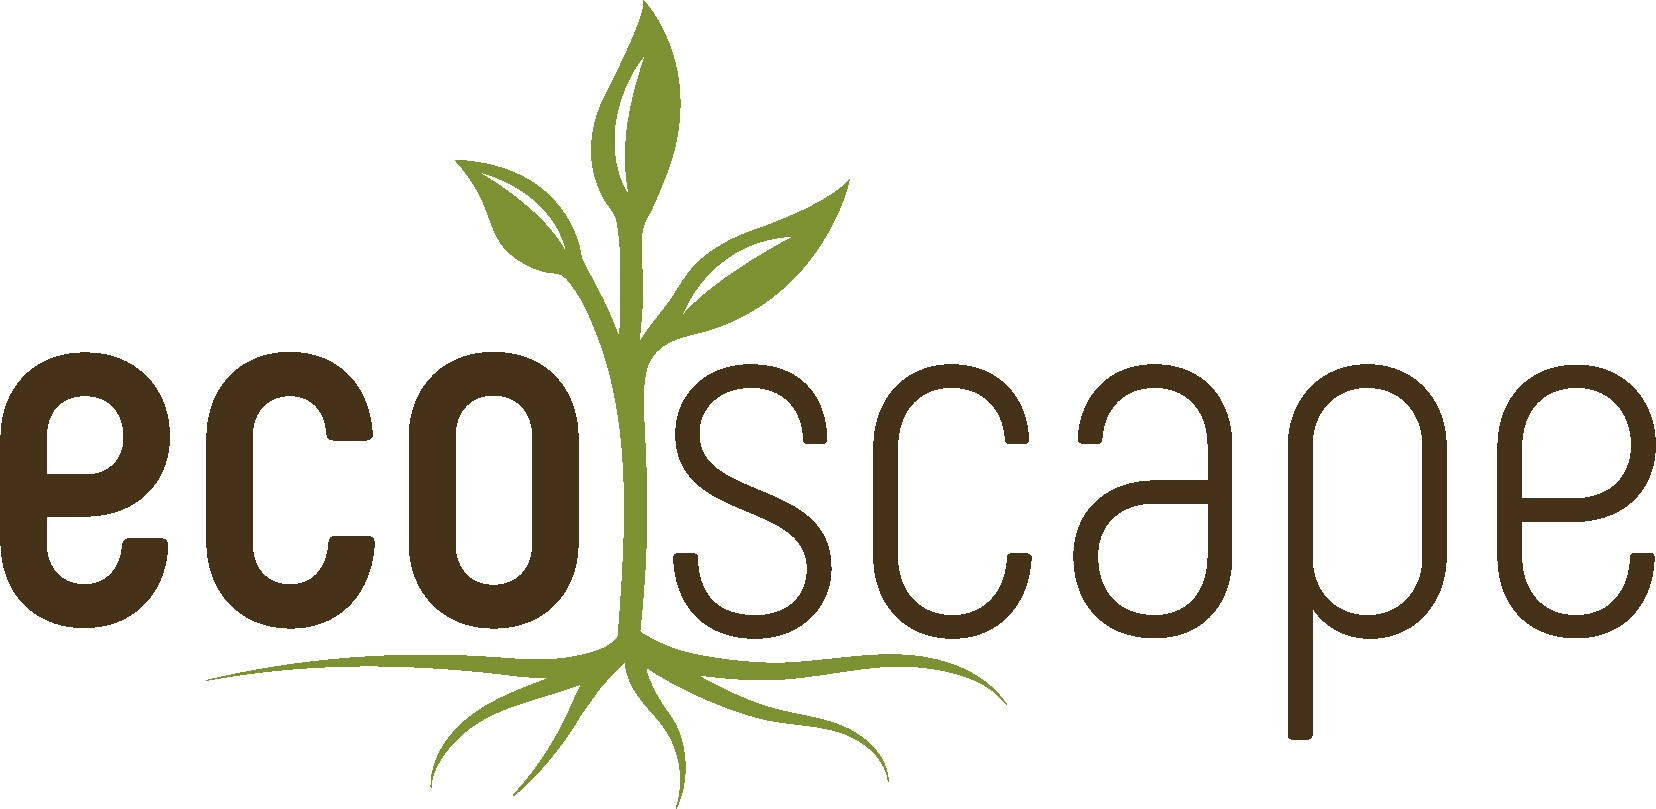 New Landscaping business needs fresh logo and identity